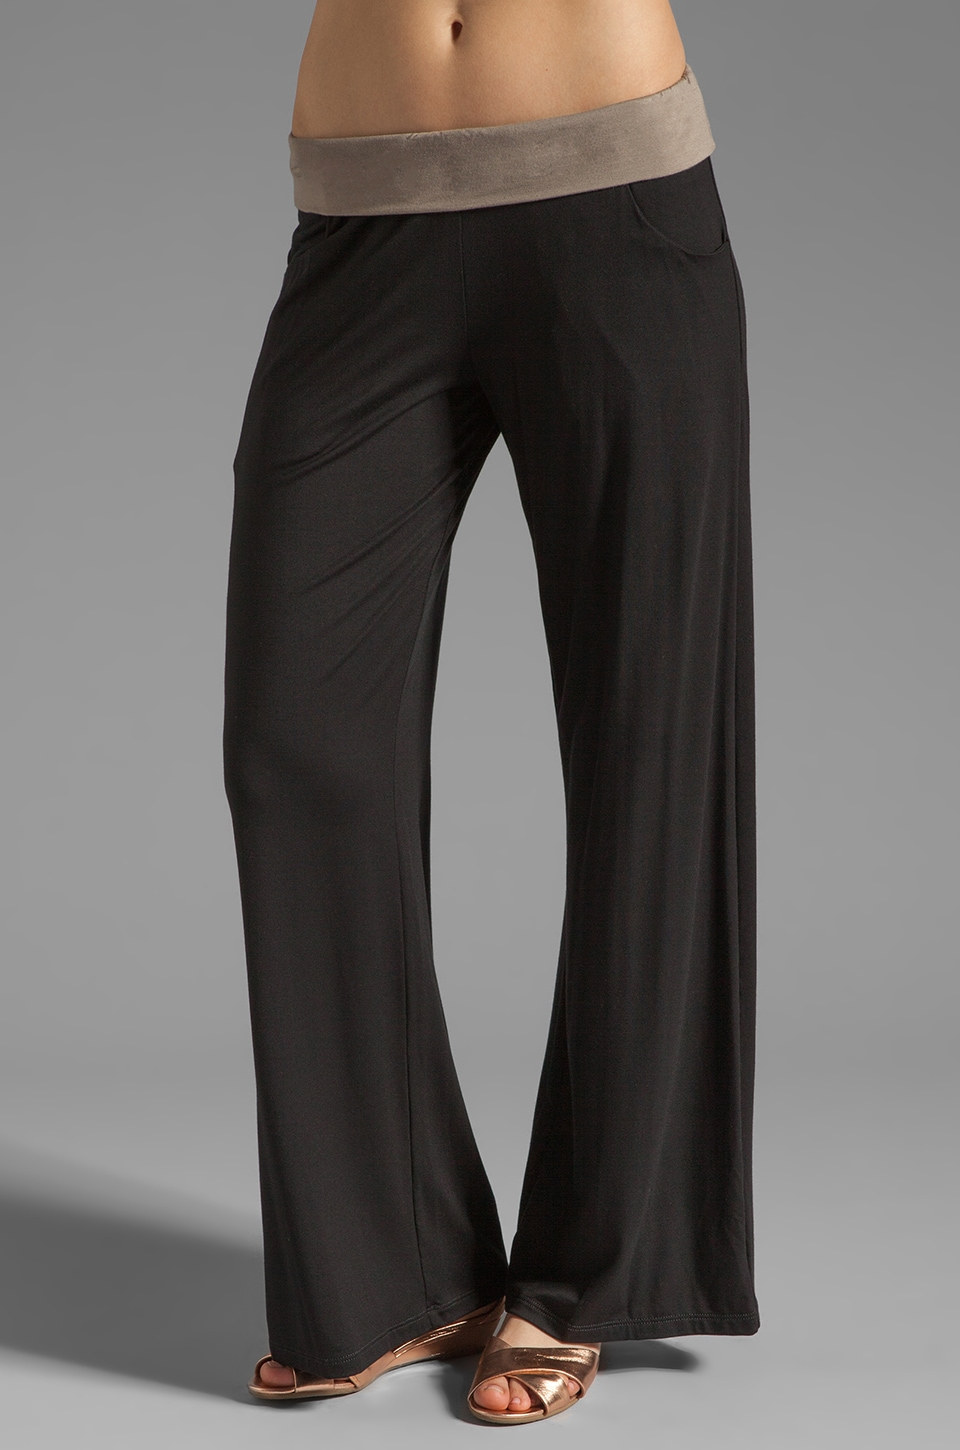 Trina Turk Mayan Color Block Wide Leg Pant in Black